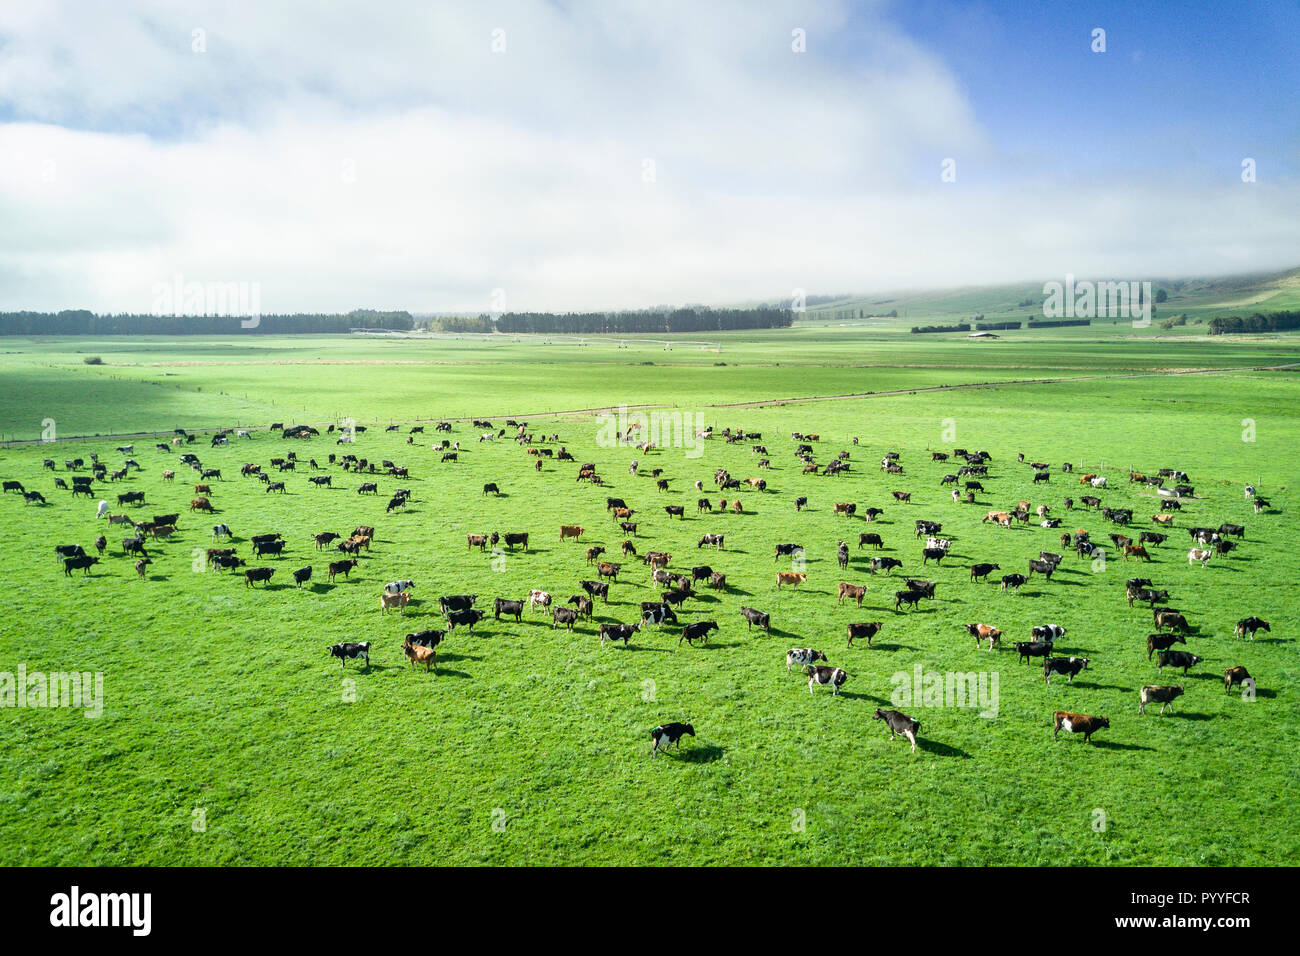 Aerial view of cattle in New Zealand countryside on the South Island - Stock Image